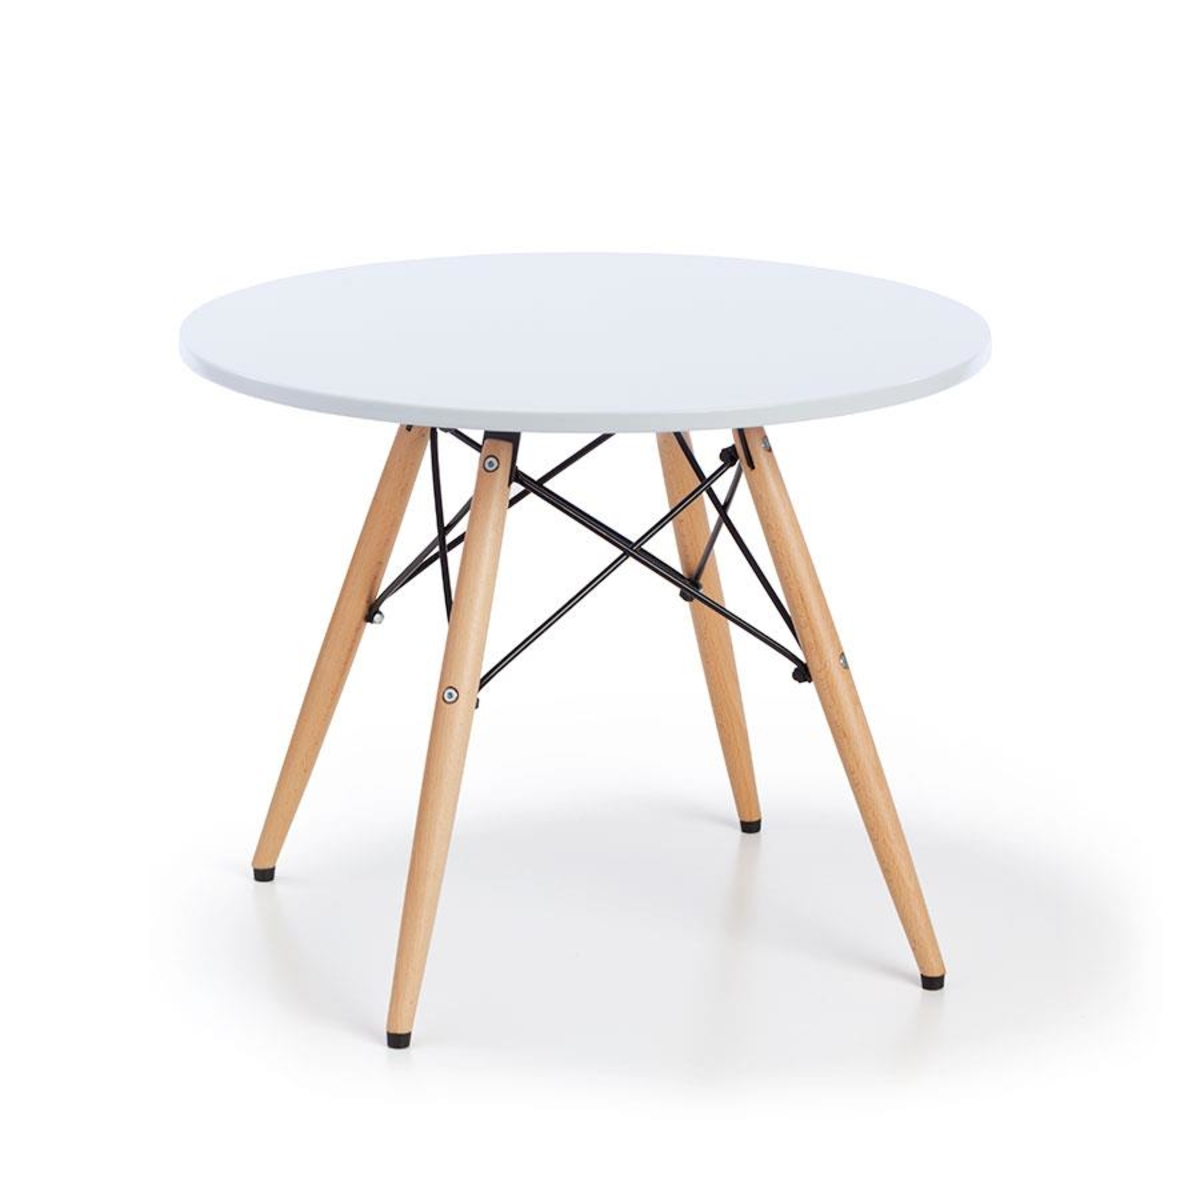 round table kmart outdoor side hover over zoom target dresses black desk with drawers floating hotel lamps usb ports west elm industrial storage wrought iron patio end brown